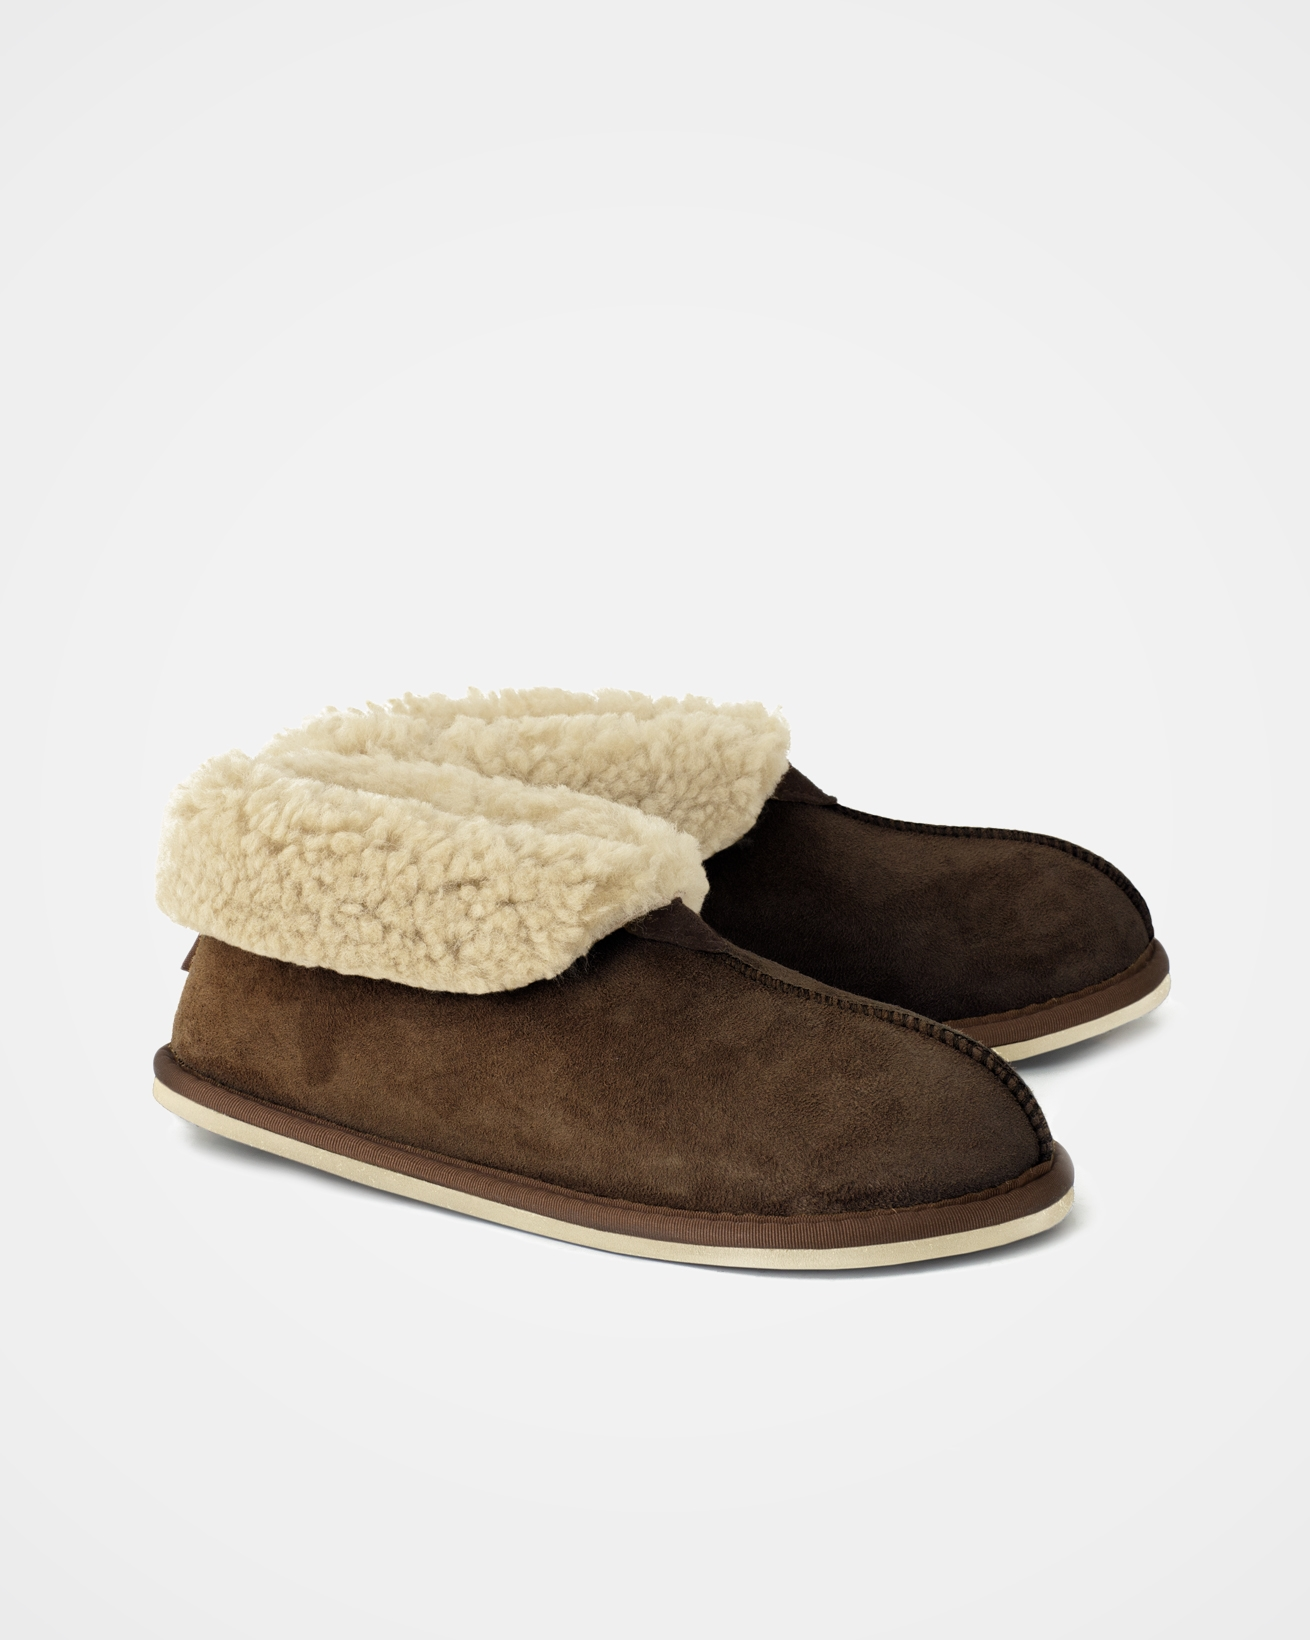 Ladies' Sheepskin Bootee Slippers - Size 8 - Mocca / Cream - 1349